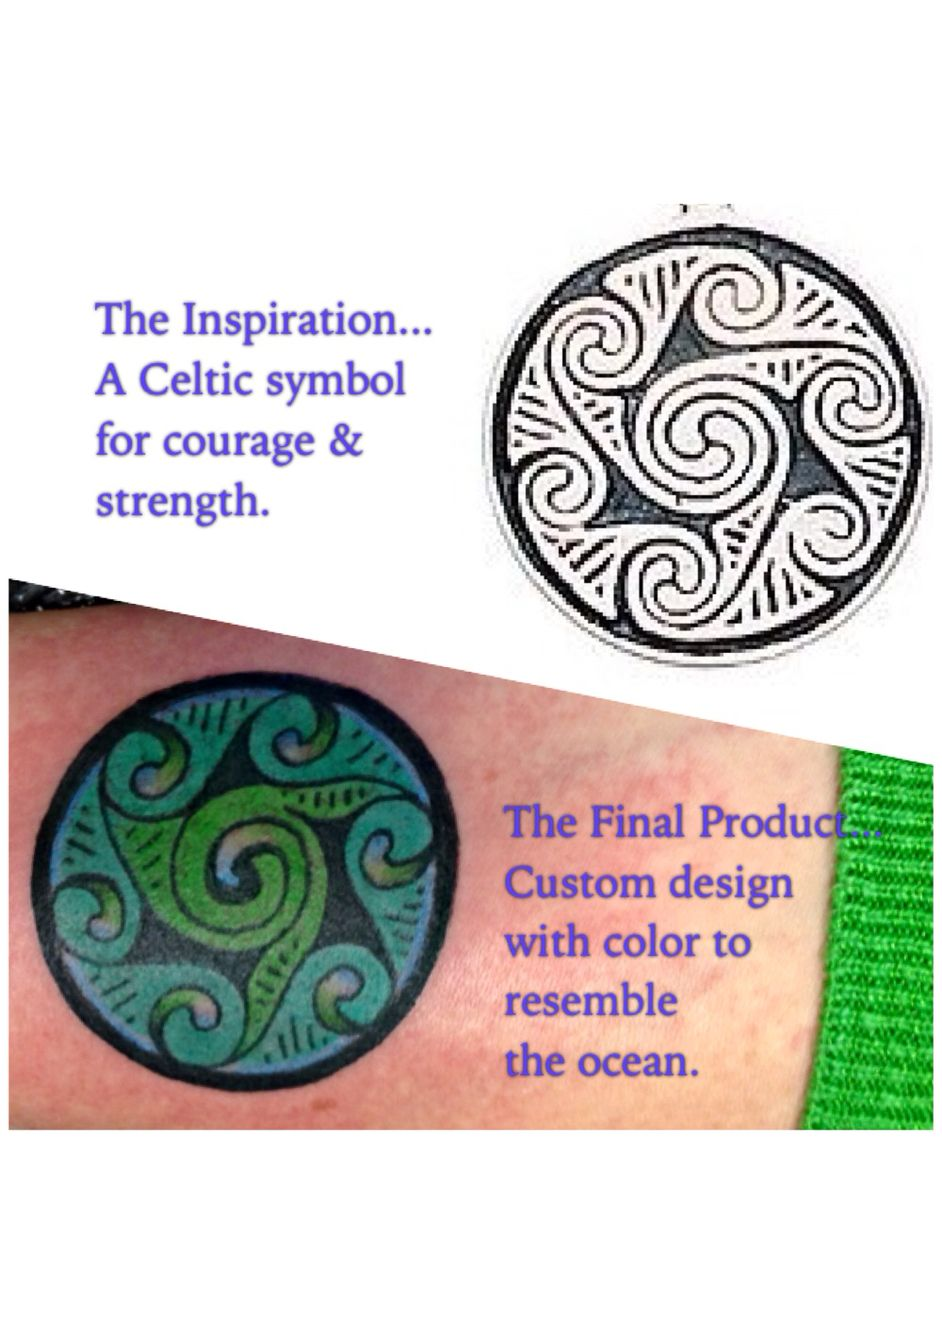 First Tattoo Done Custom Tattoo Inspired By Celtic Symbols For